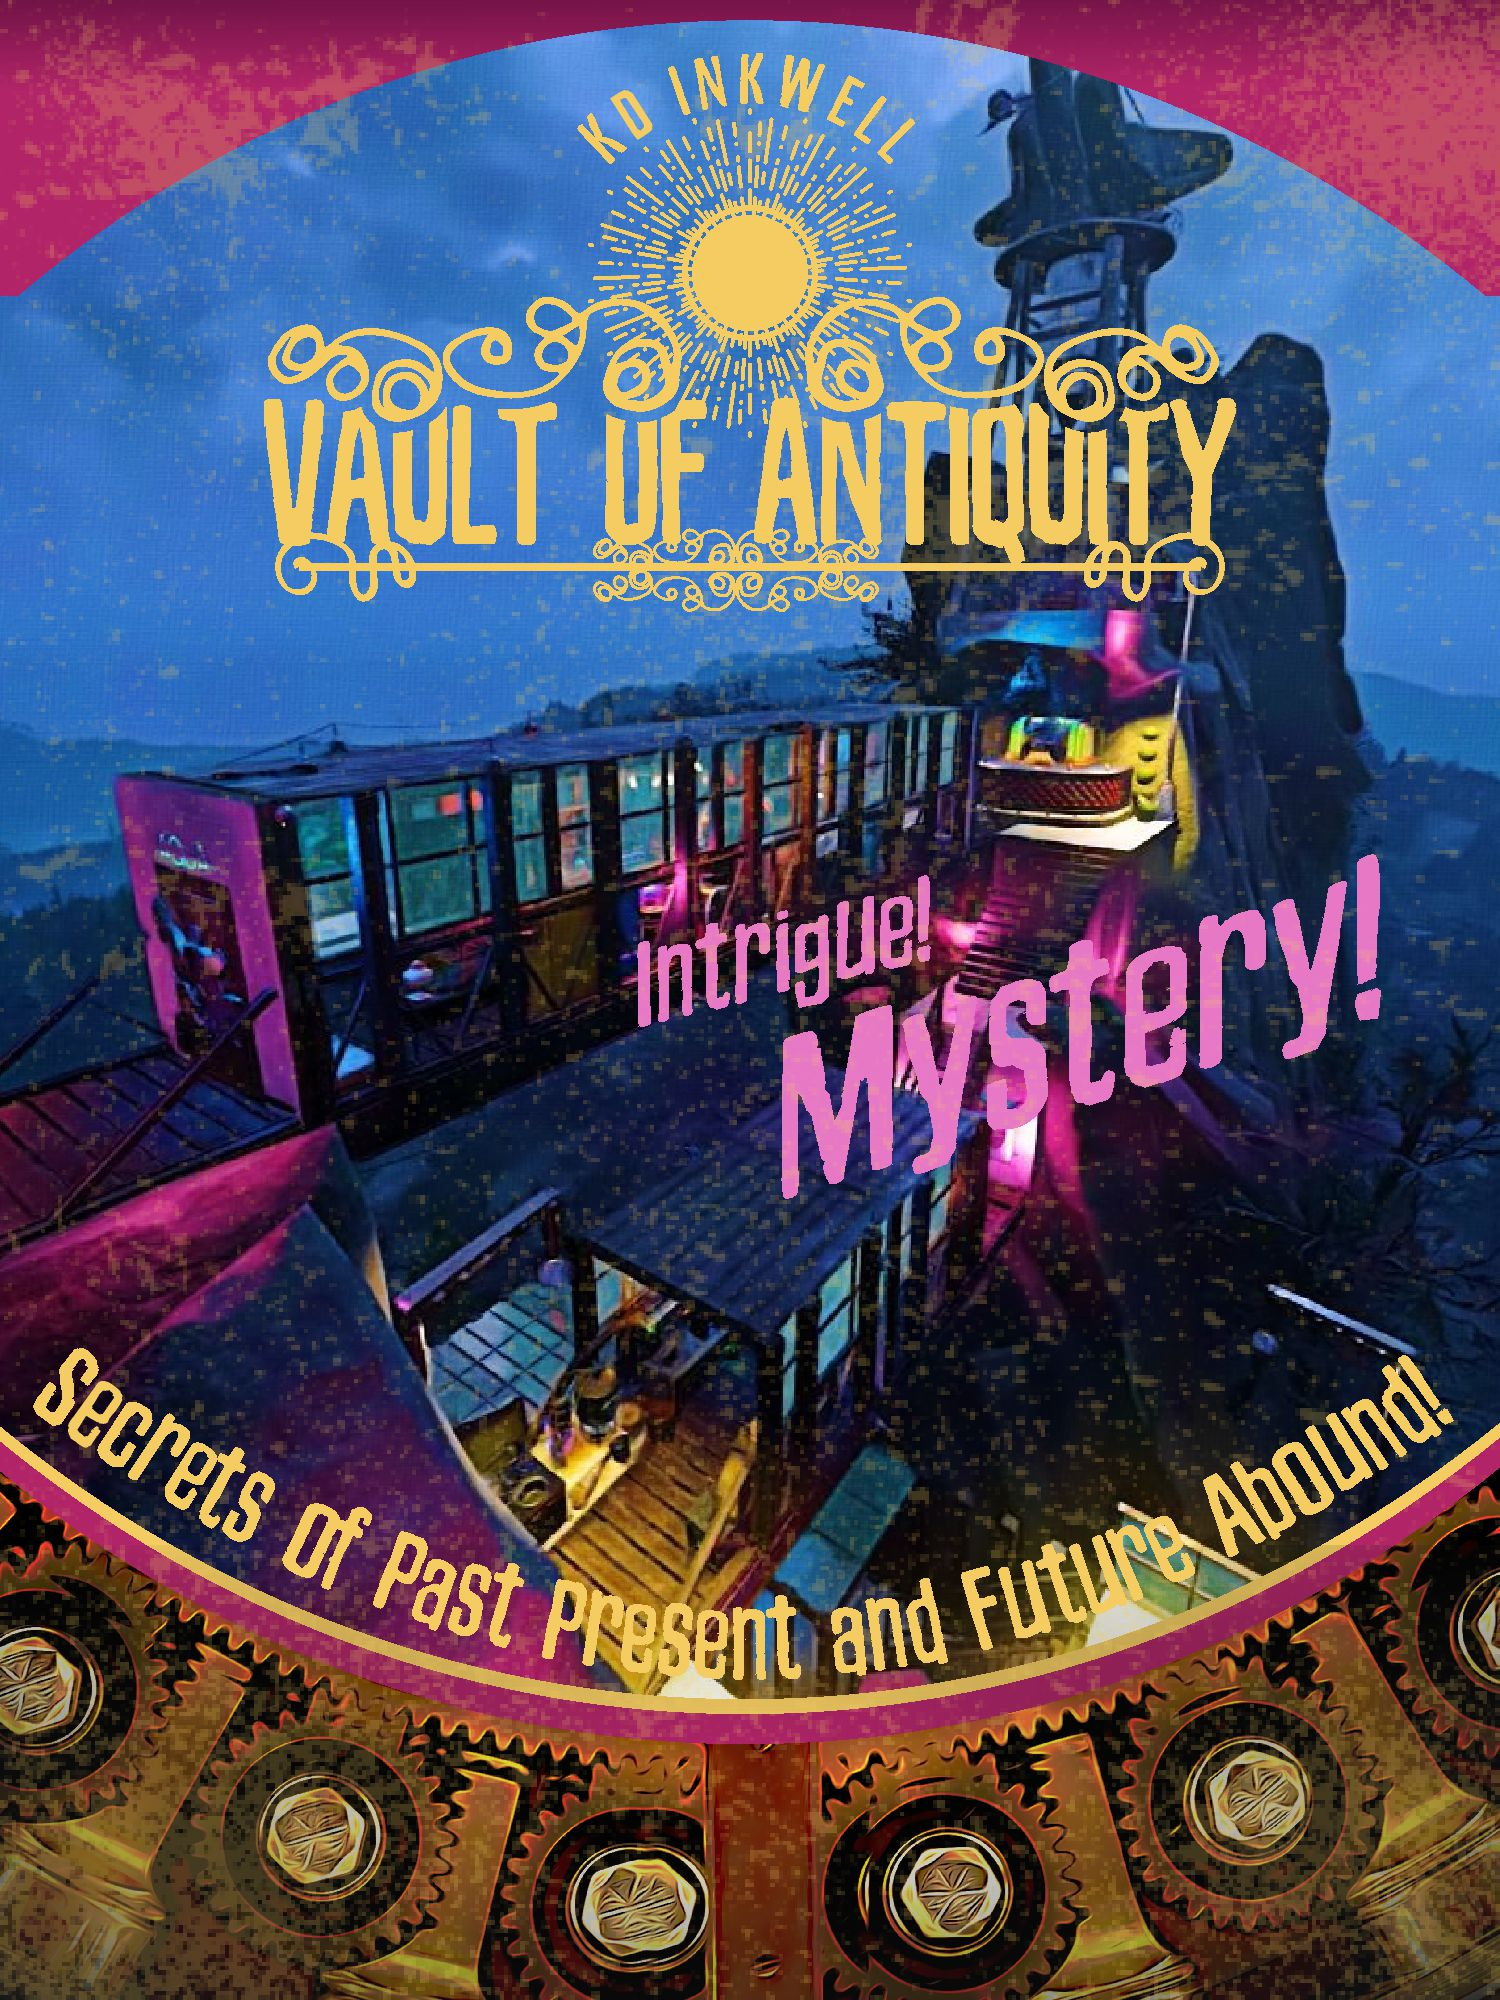 KD Inkwell's Vault of Antiquity